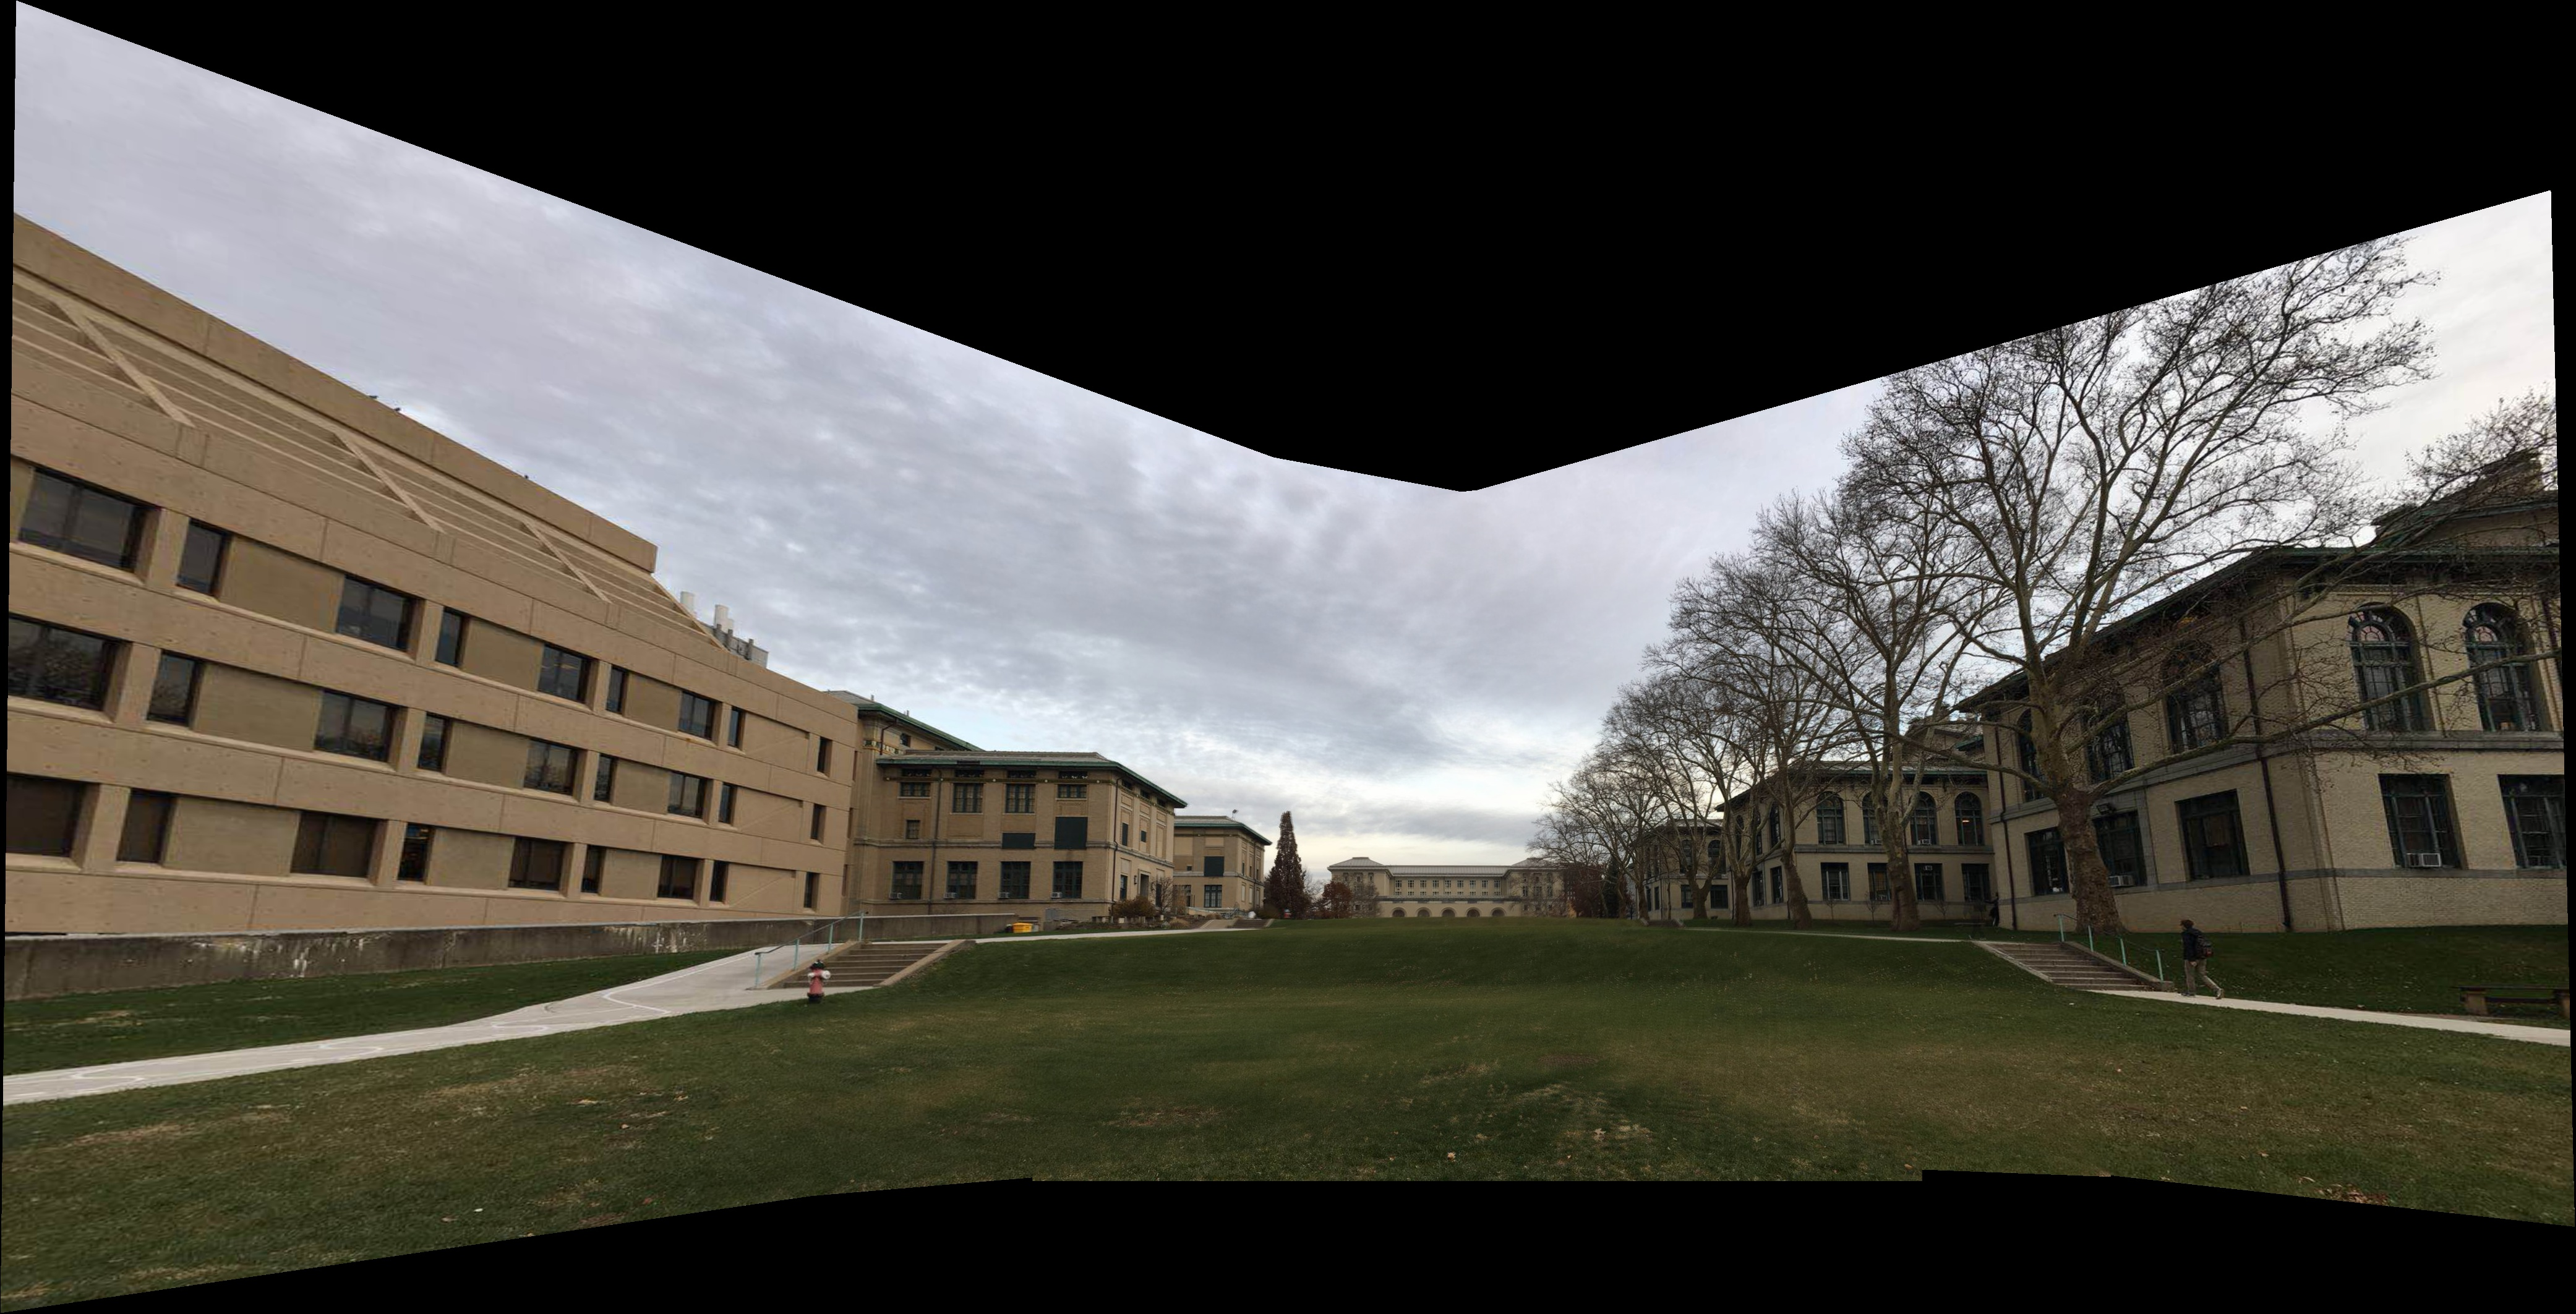 GitHub - zq-chen/ParaPano: CMU 15-618 Final Project - Parallel Panorama